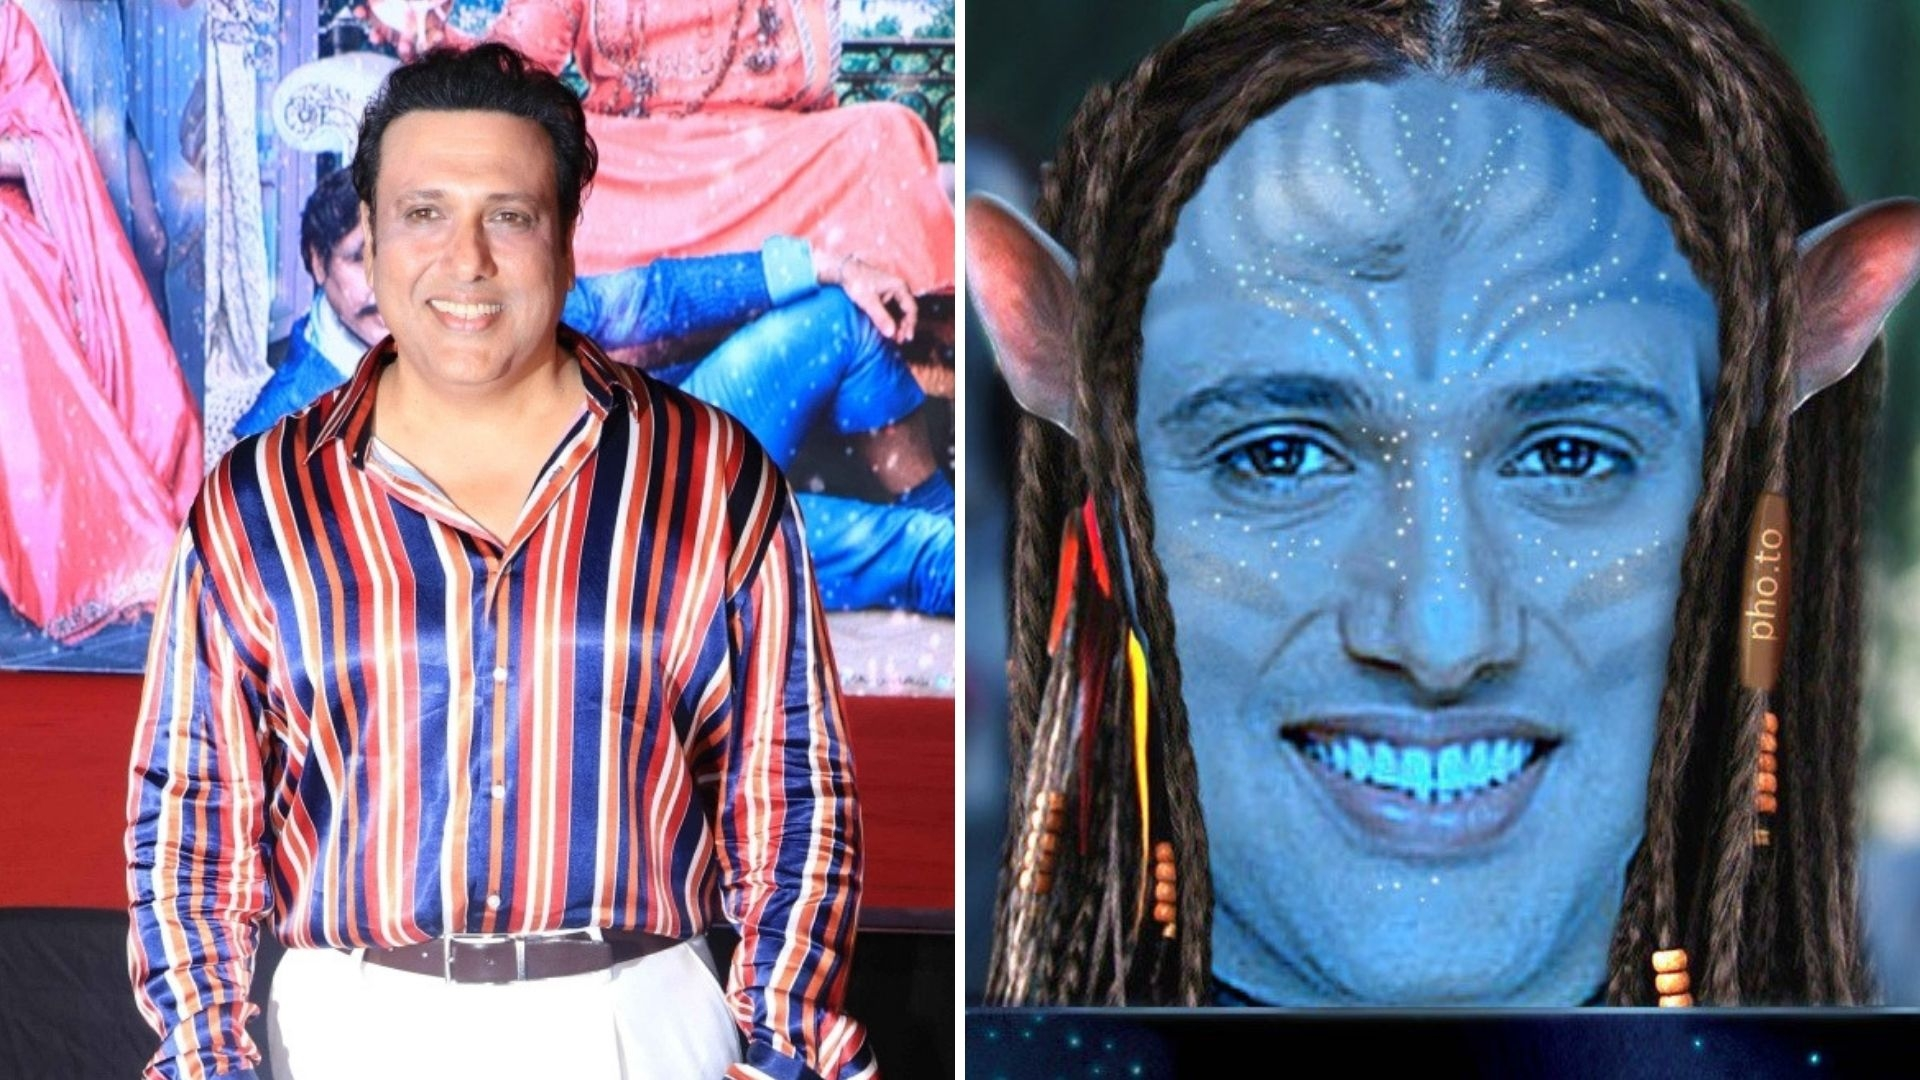 'Avatar' Starring Govinda Would Be 'Avtaar No 1', Says Twitter